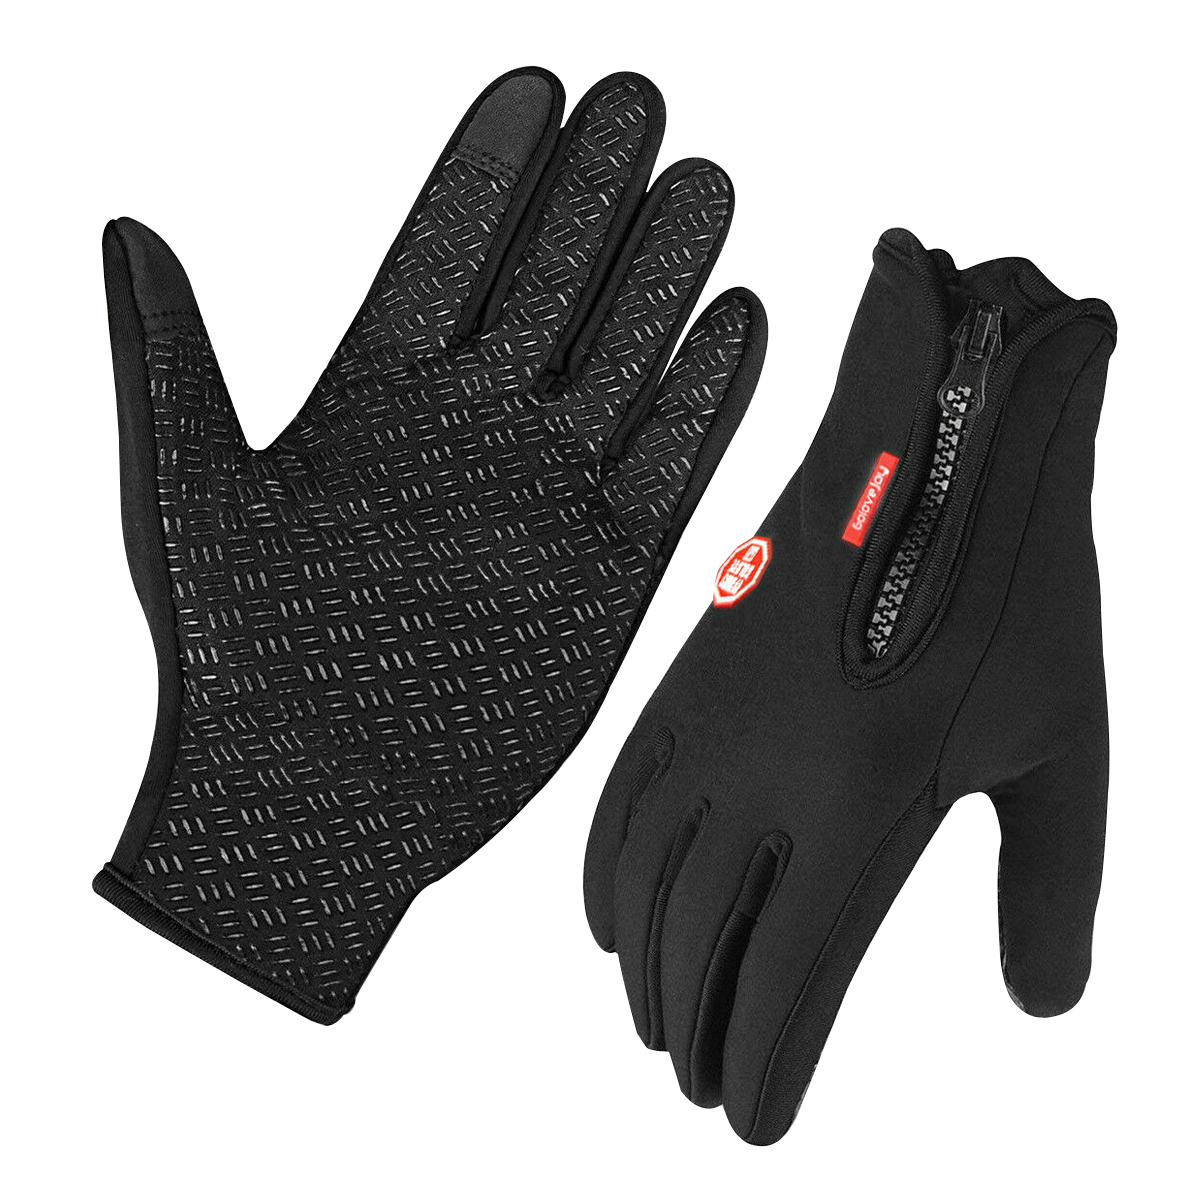 Details about  /Touchscreen Thermal Outdoor Sports Gloves with Back Pocket Warm Lining Gloves